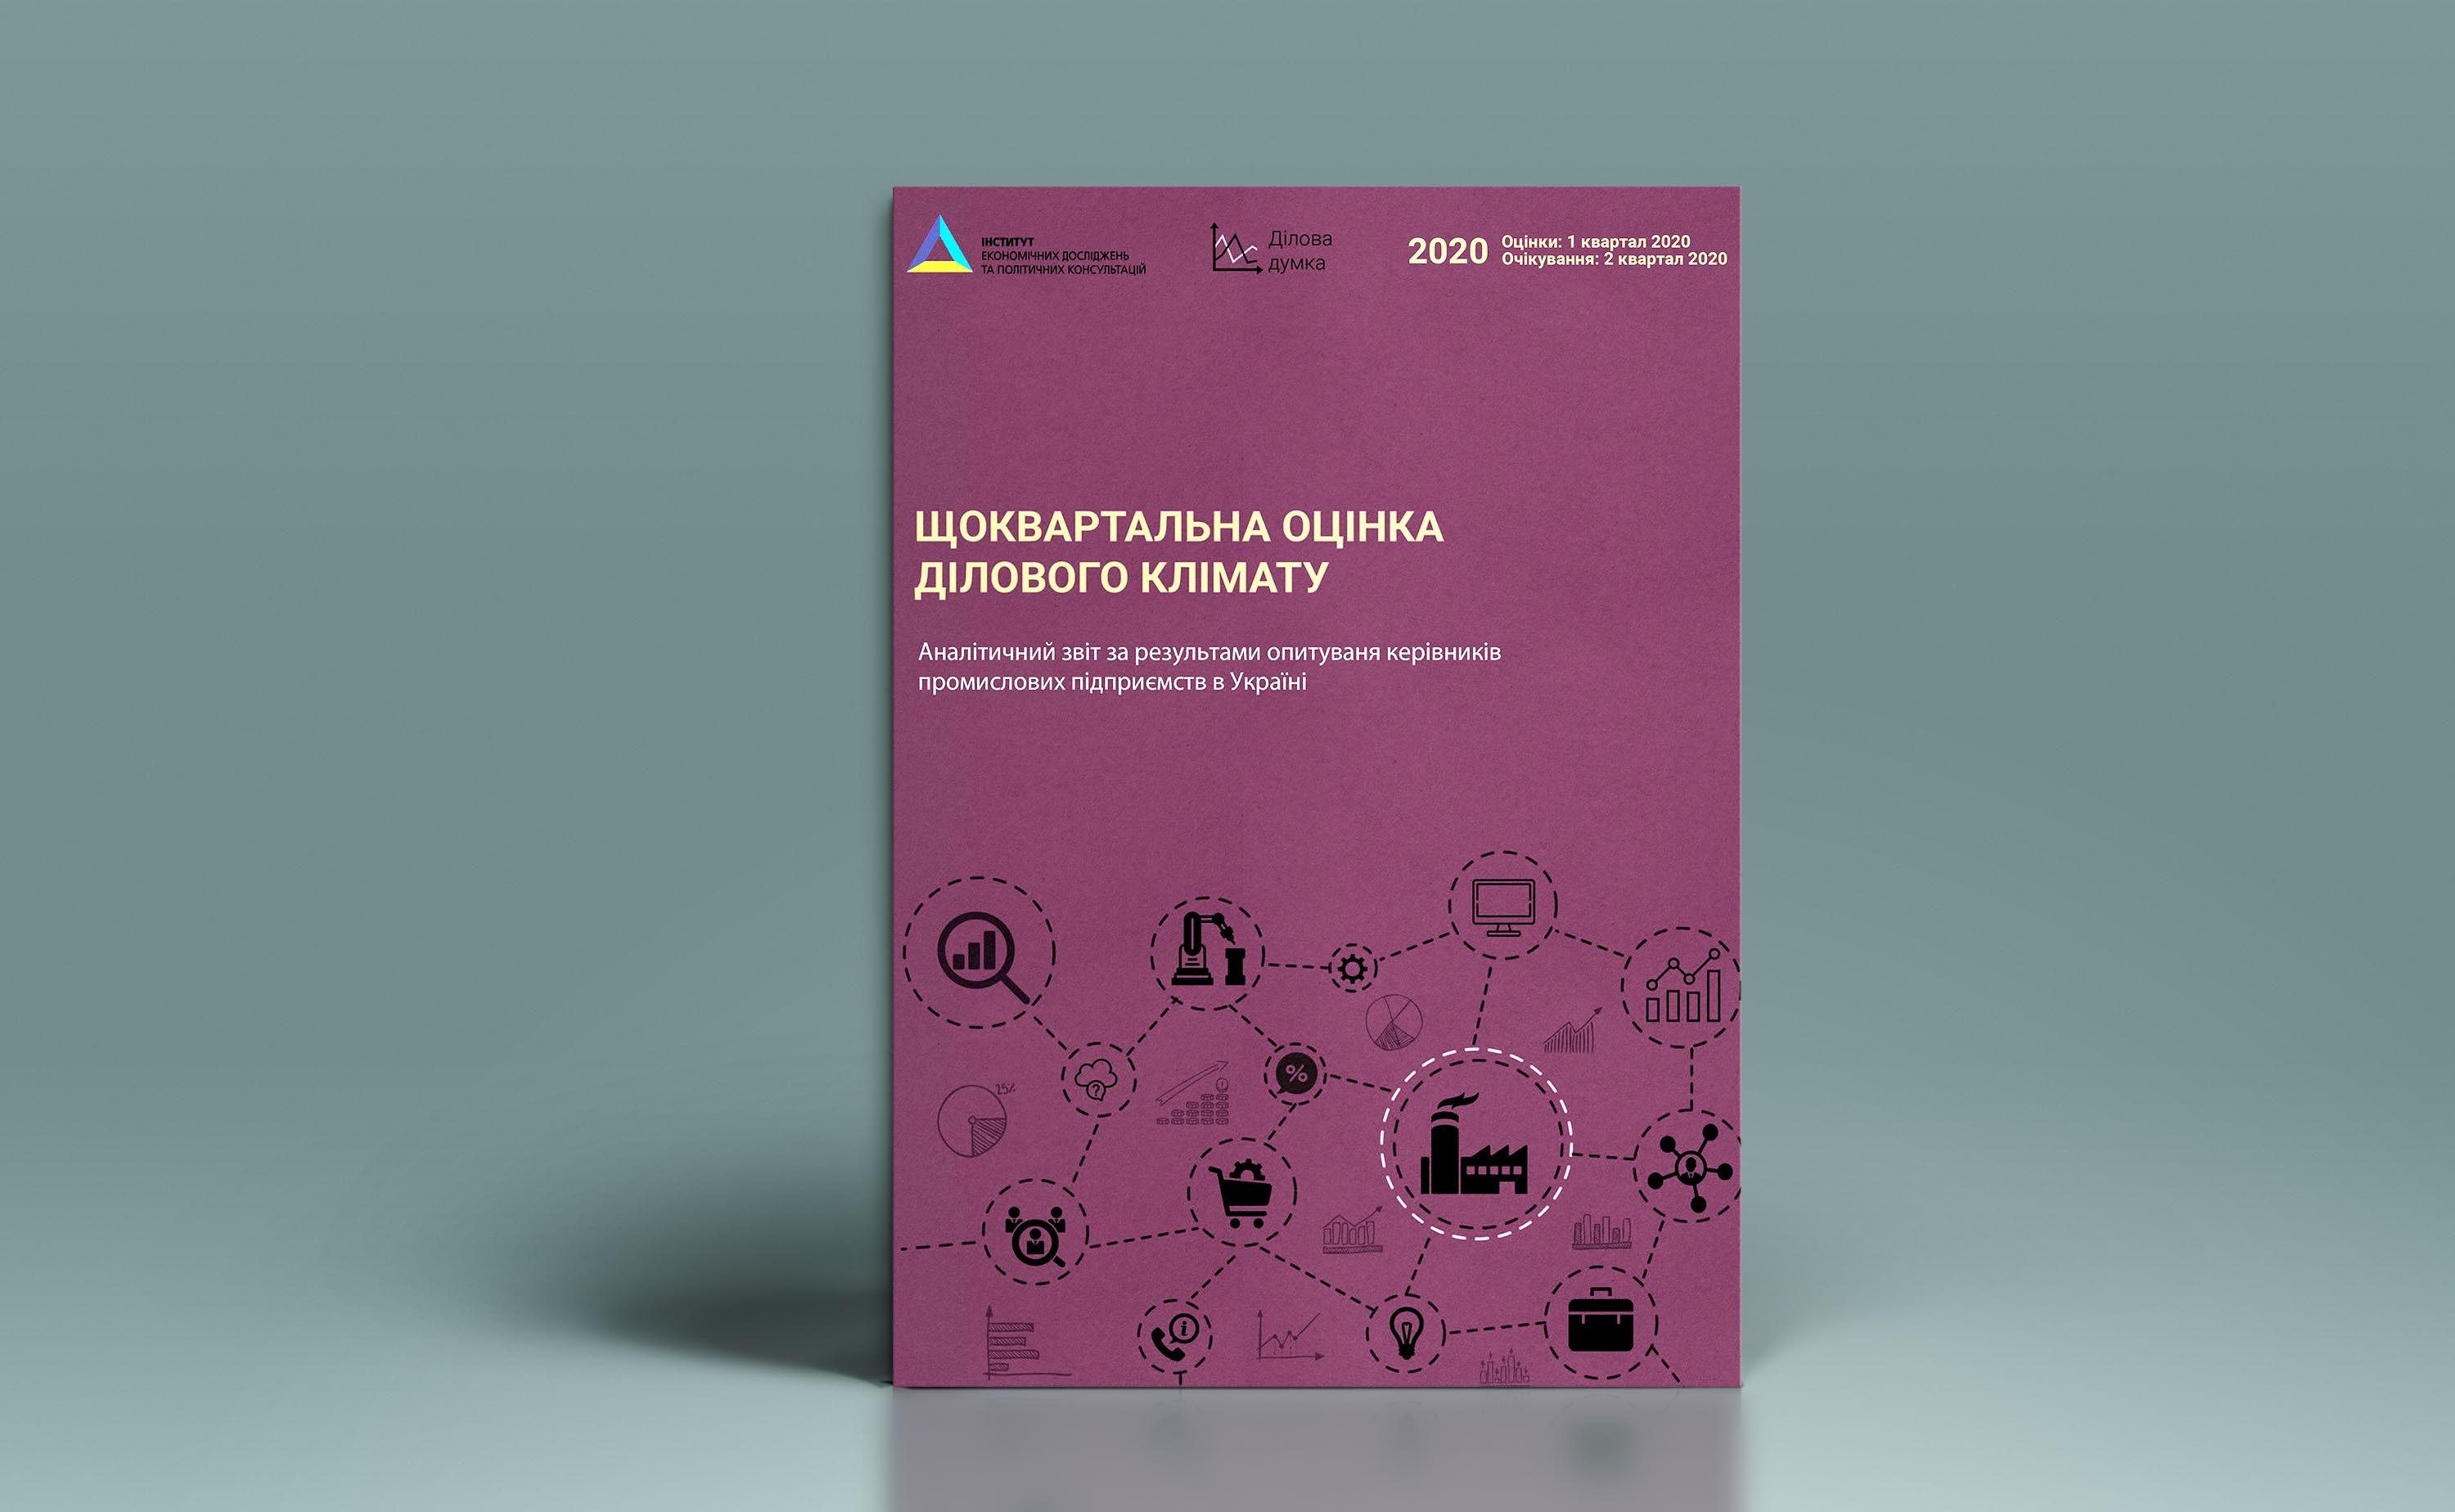 http://www.ier.com.ua/files/Regular_products/BTS/Industry/Dilova_dumka_1_2020.jpg